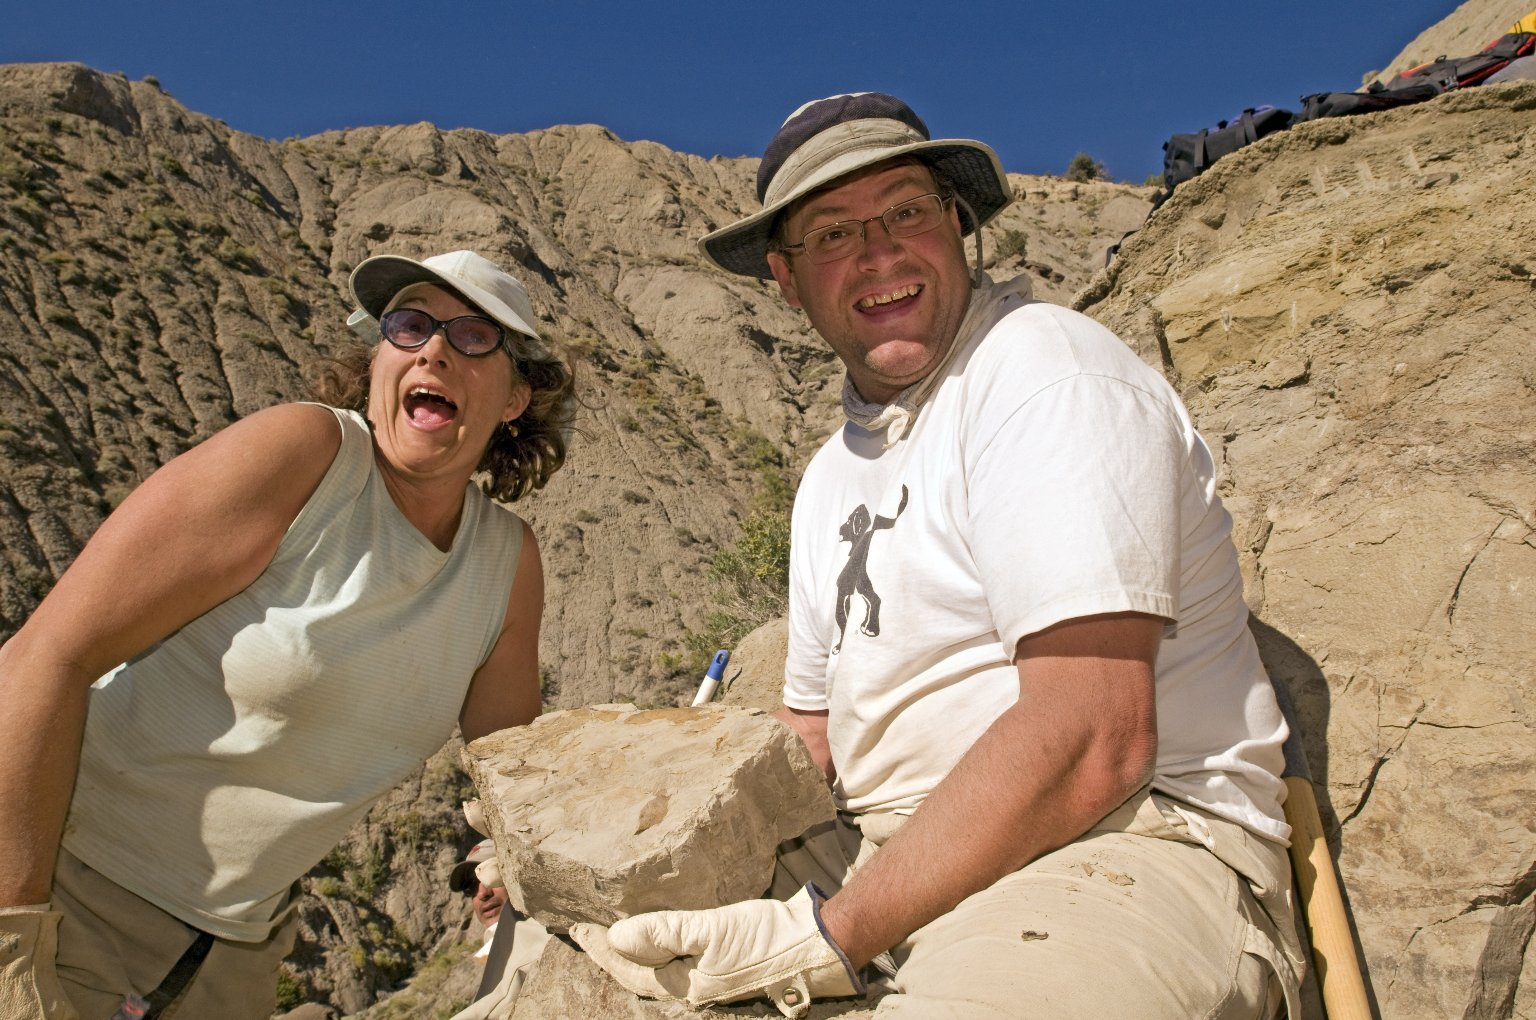 L-R: DMNS Volunteer Cheryl McCutchen and Dr. Kirk Johnson show a specimen at a dig site.